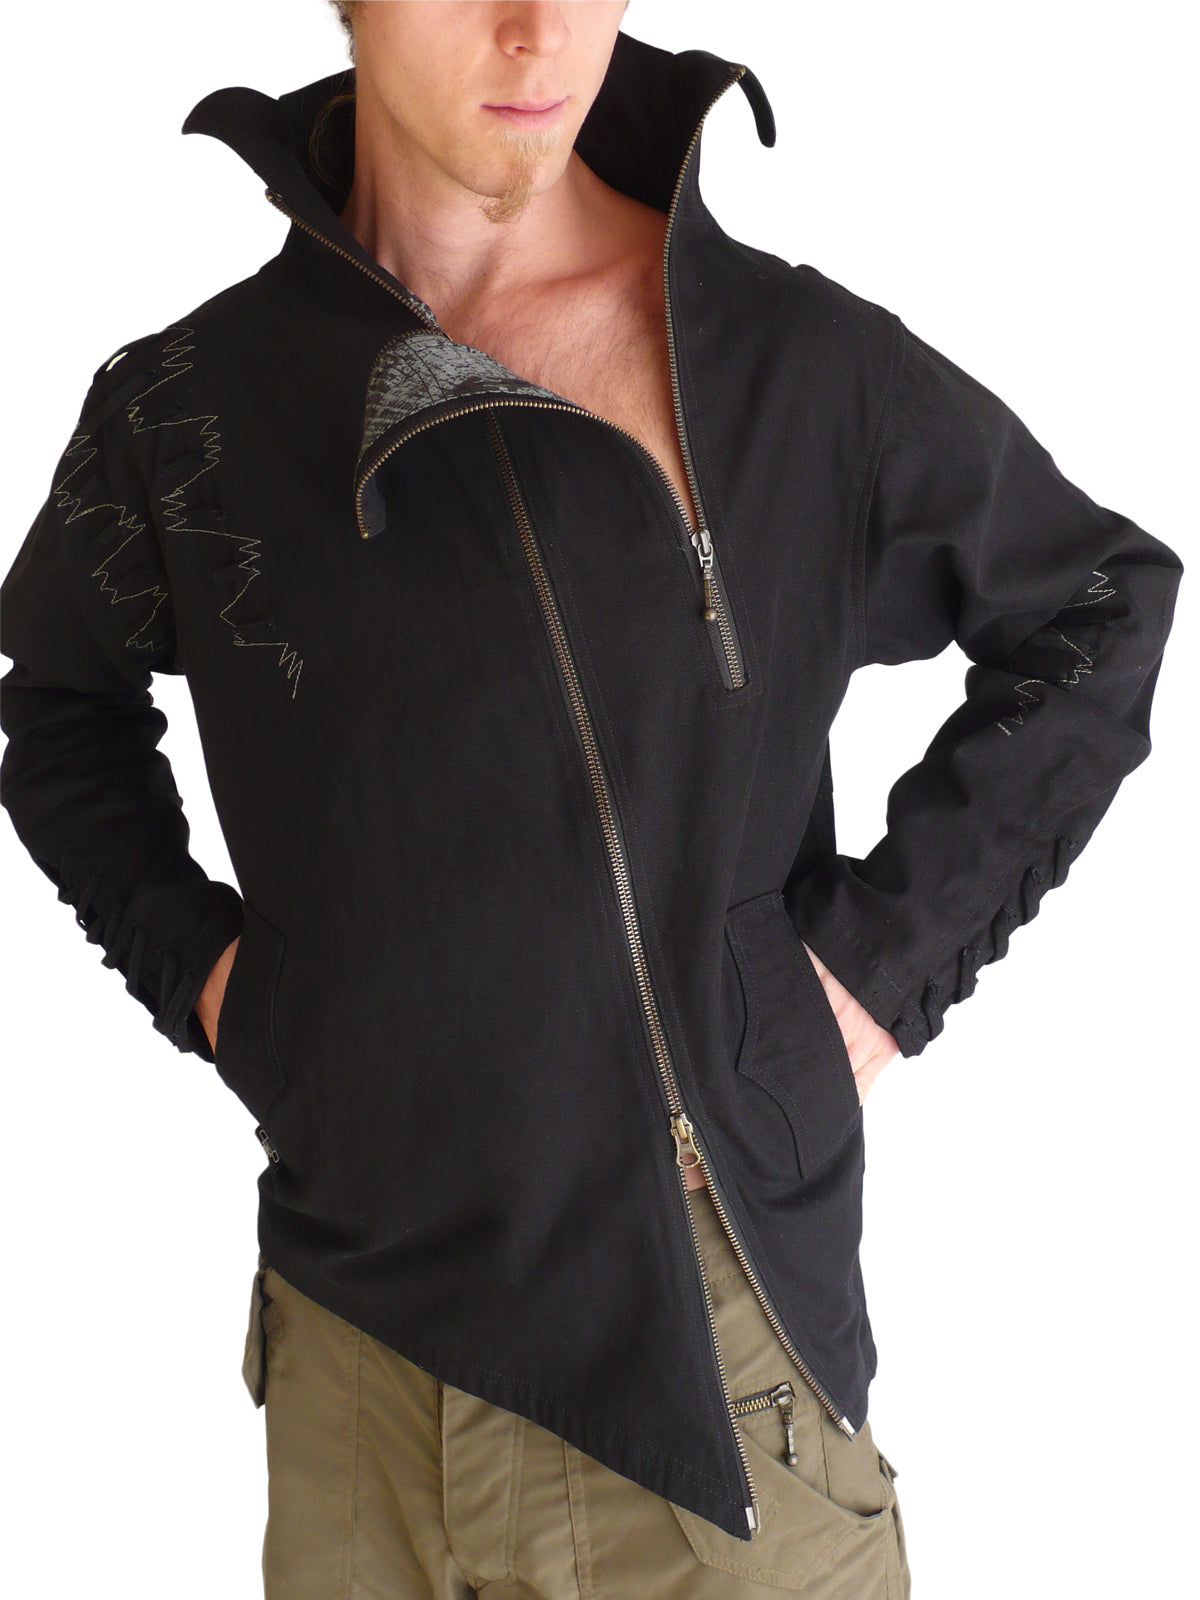 Mens Urban Streetwear Jacket